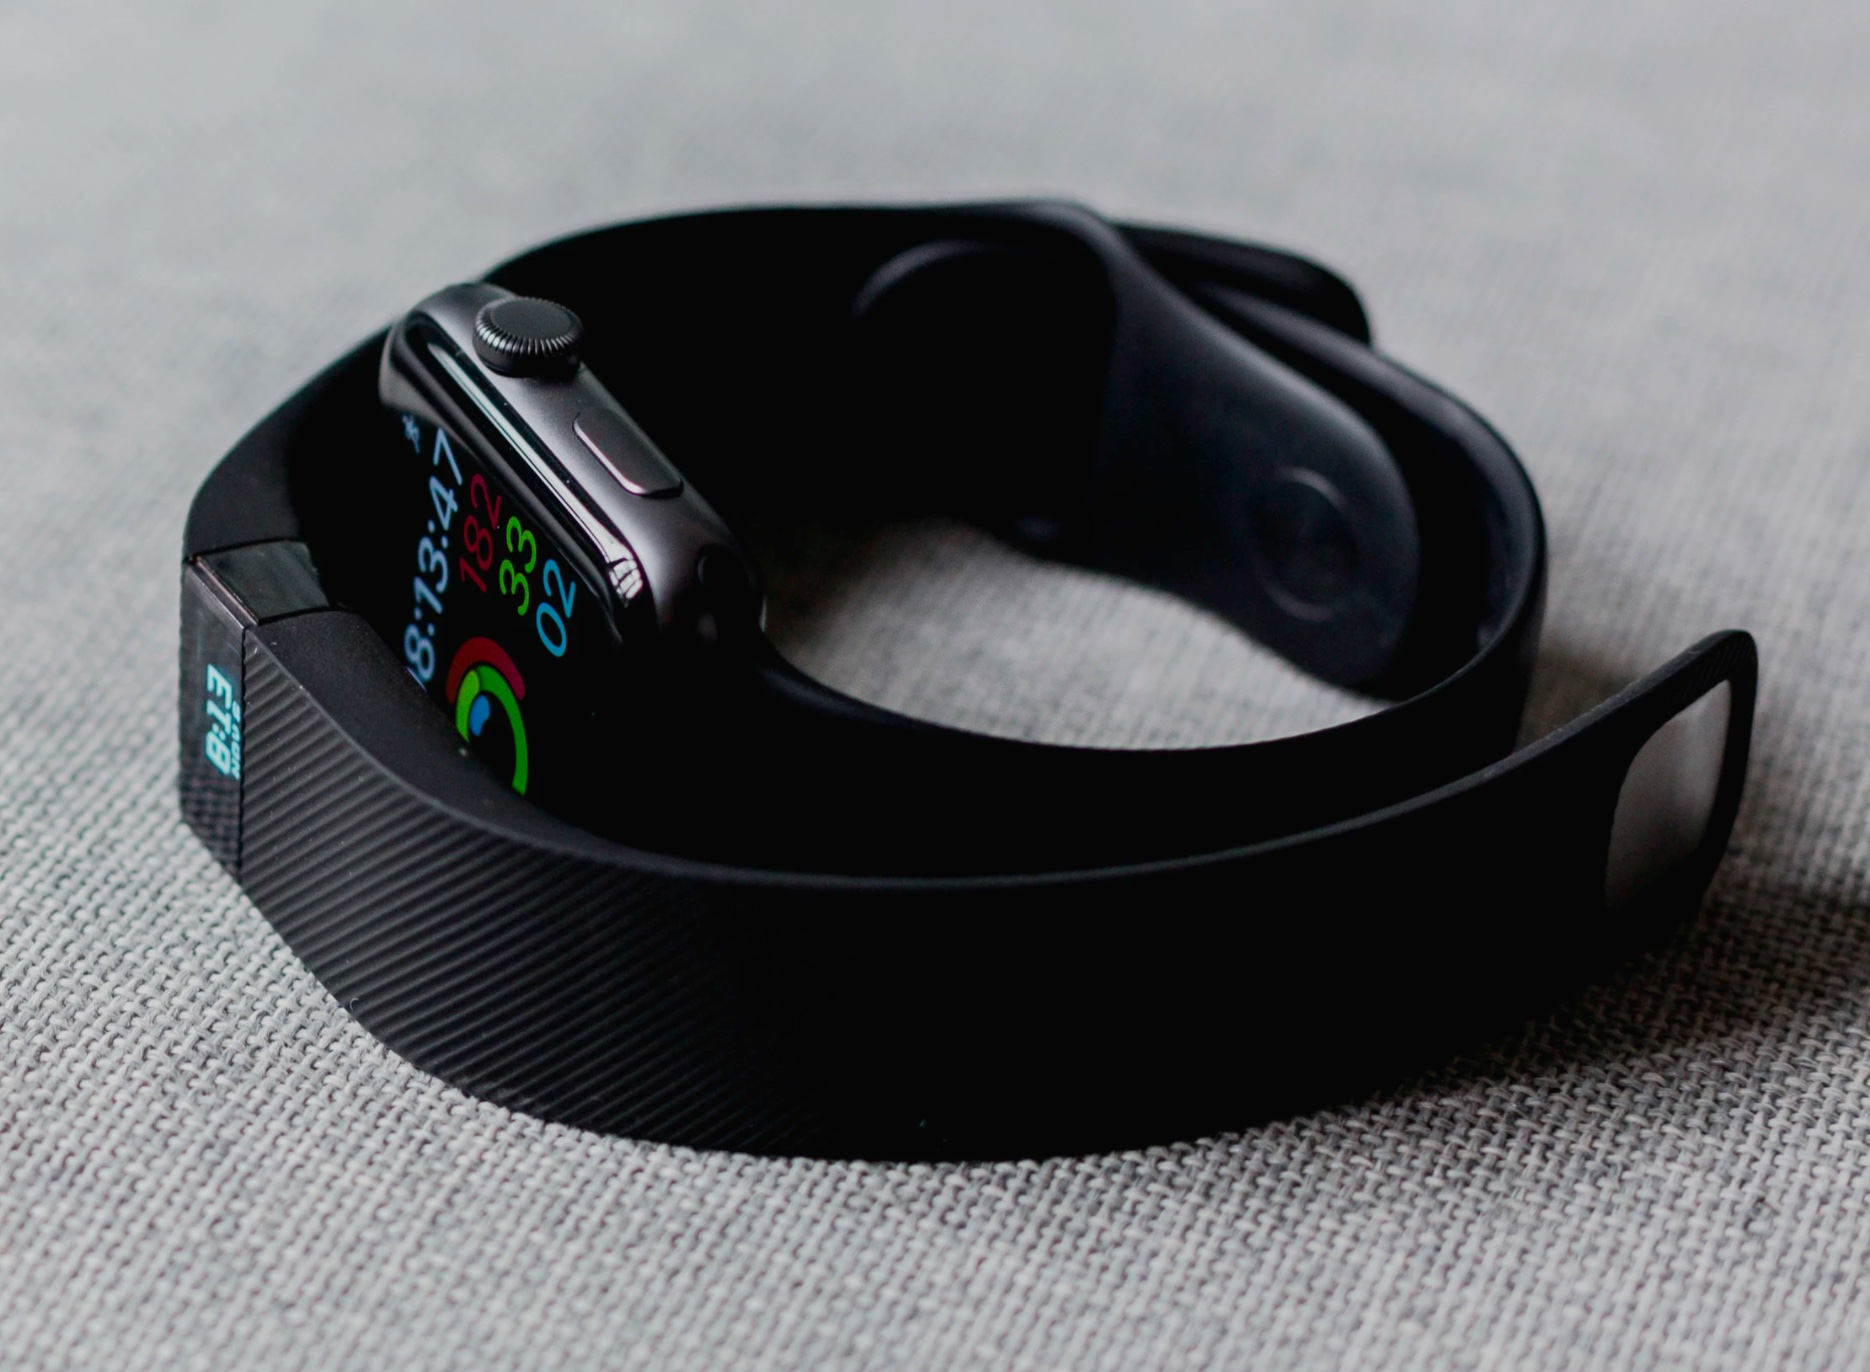 Wearable shipments growth expected to slow sharply this year-cnTechPost